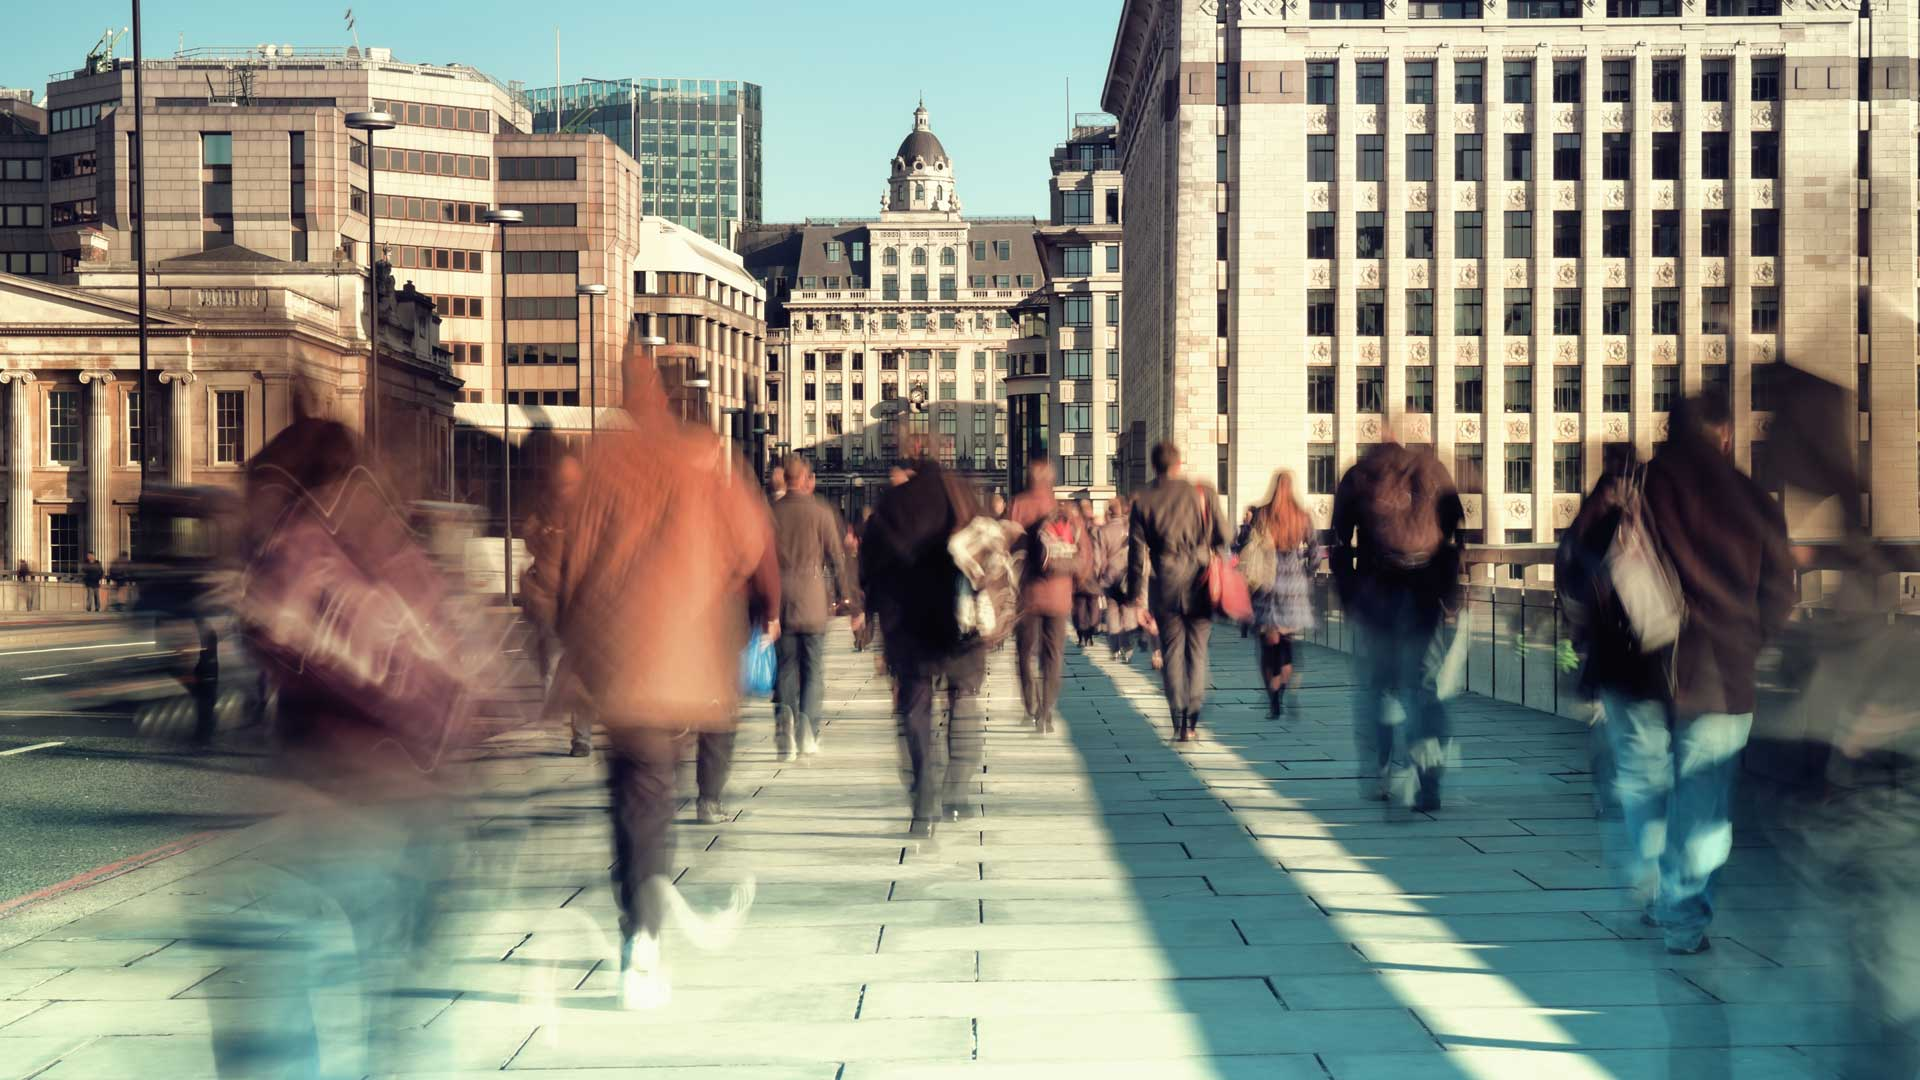 Slow shutter speed image of commuters walking over London Bridge